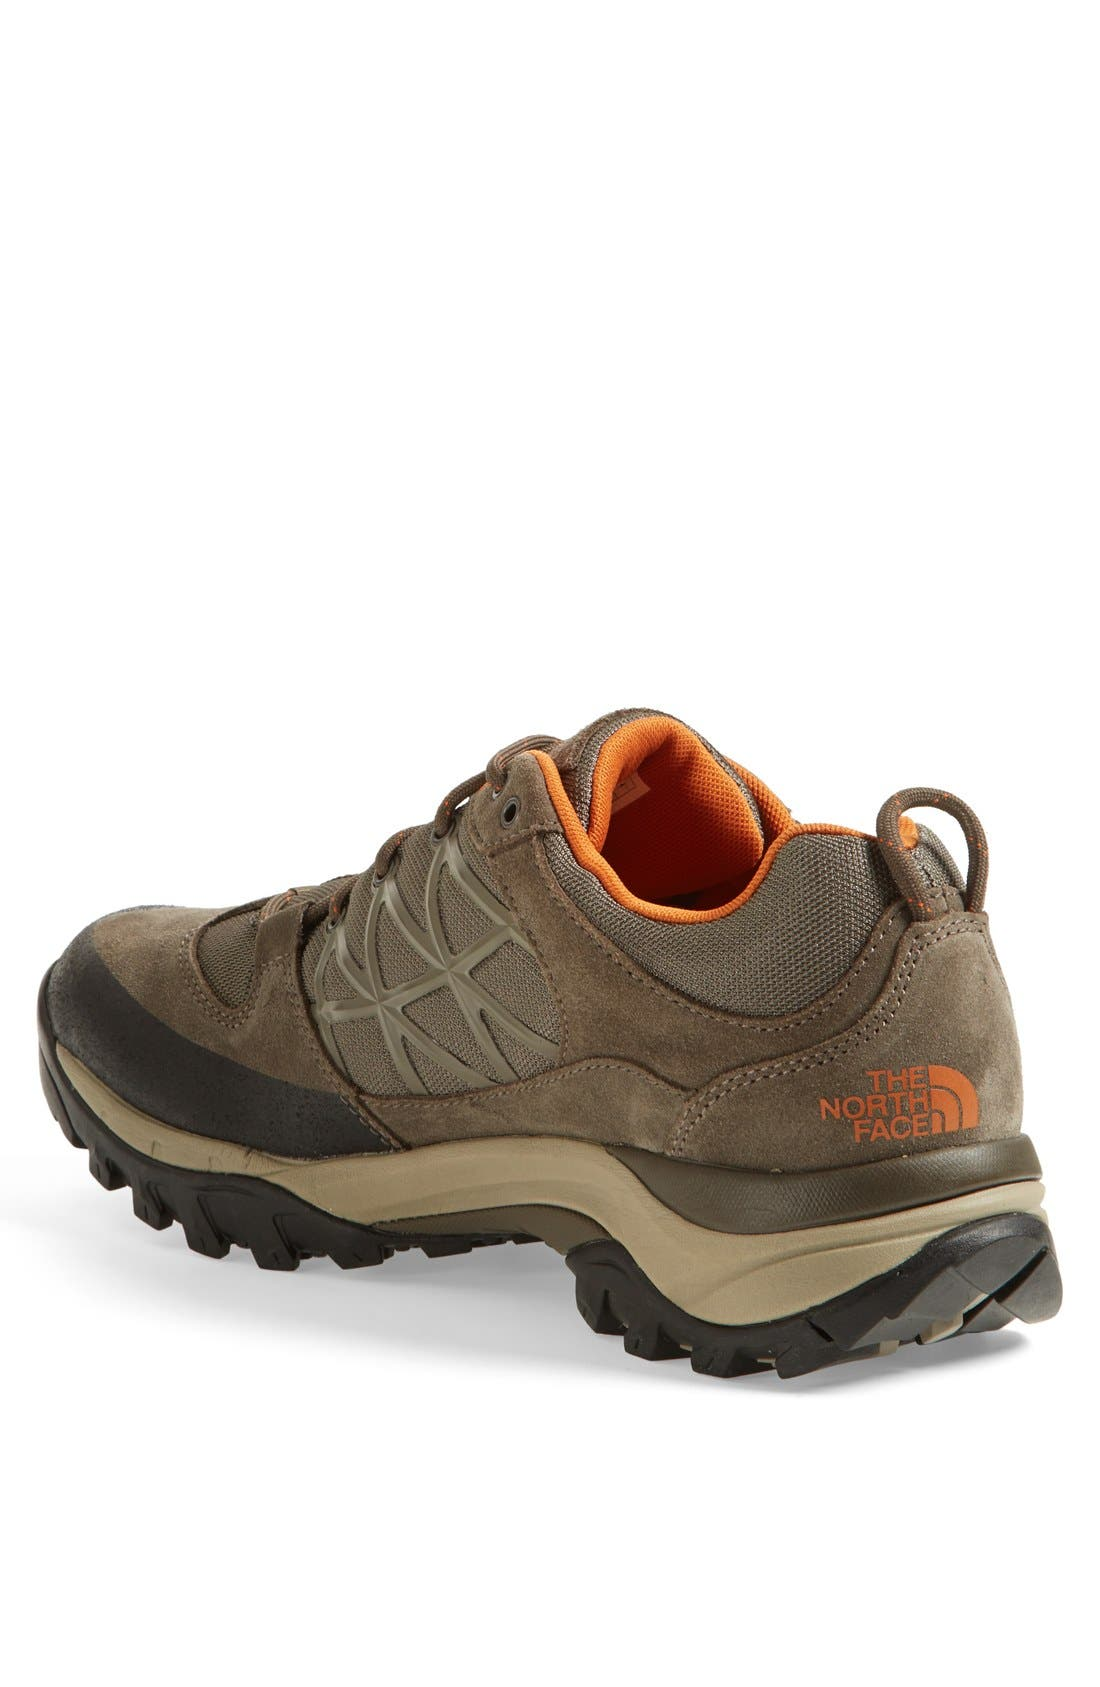 Alternate Image 2  - The North Face 'Storm WP' Hiking Shoe (Men)